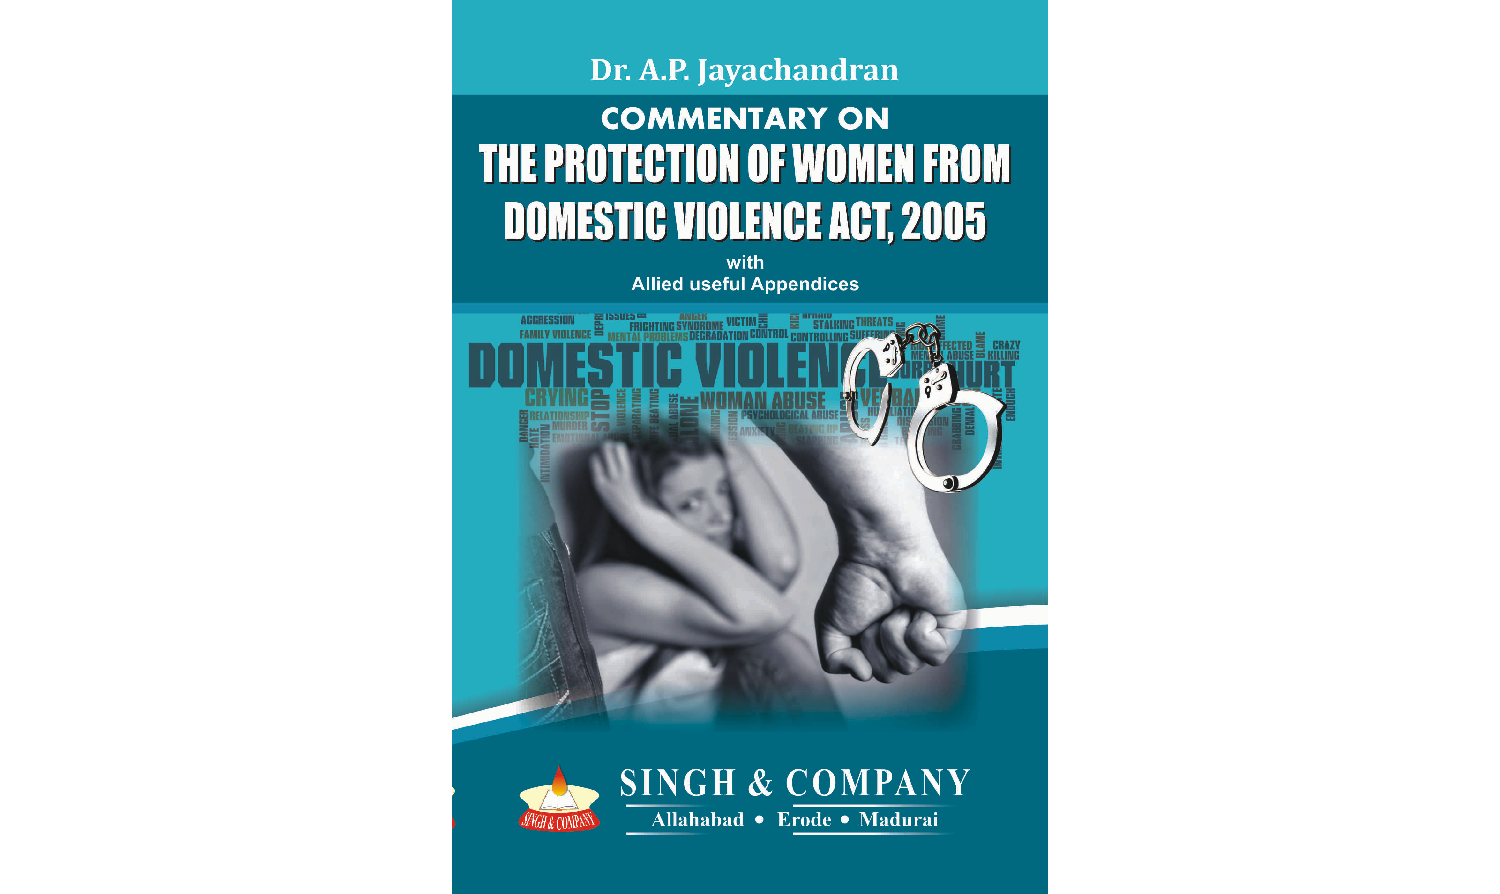 Commentary on THE PROTECTION OF WOMEN FROM DOMESTIC VIOLENCE ACT,2005